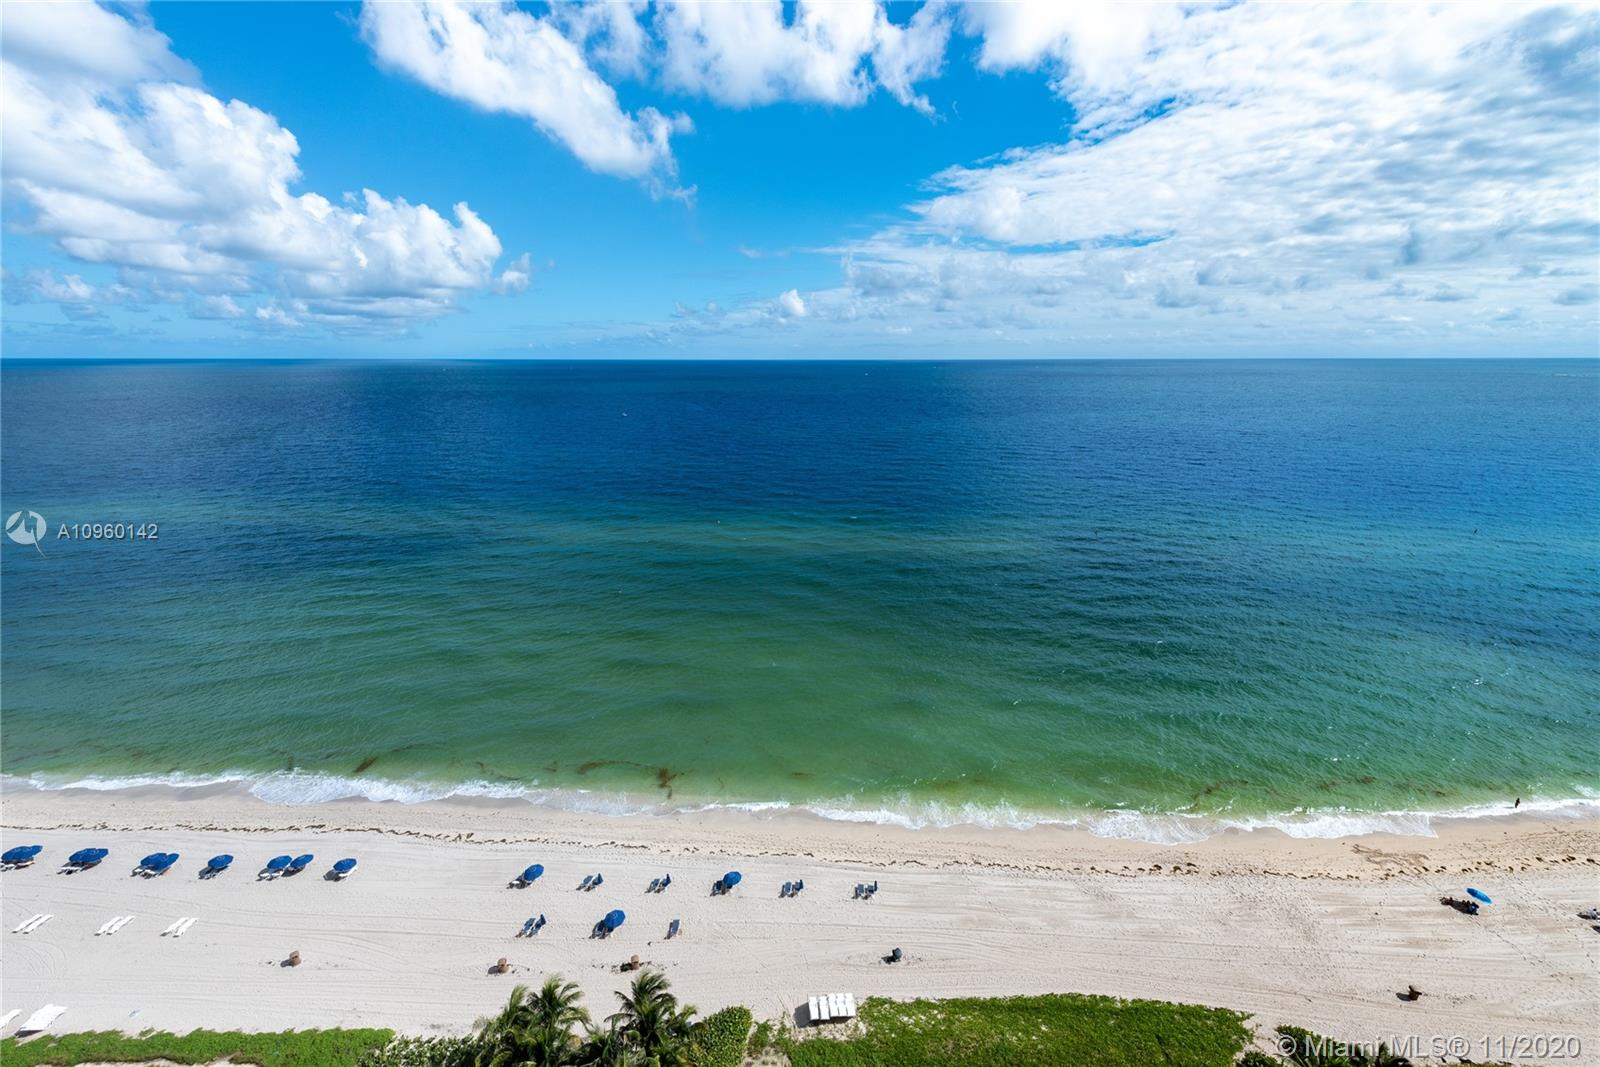 The most desirable floor plan in Turnberry Ocean Colony. Spacious 3,480 sqft unit with direct Ocean and Intracoastal views. 4 bedroom, 5.5 bathrooms + maid's quarter. Featuring 10' ceilings, Kitchen with Snaidero cabinets and Gaggenau appliances. Turnberry Ocean Colony is known for its 5 star service and the resort amenities, including two heated pools, outdoor jacuzzis, full size fitness center, pilates room with state of art machines, full service spa, 2 restaurants, hair salon, beach service, kid's room and much more. Very easy to show.